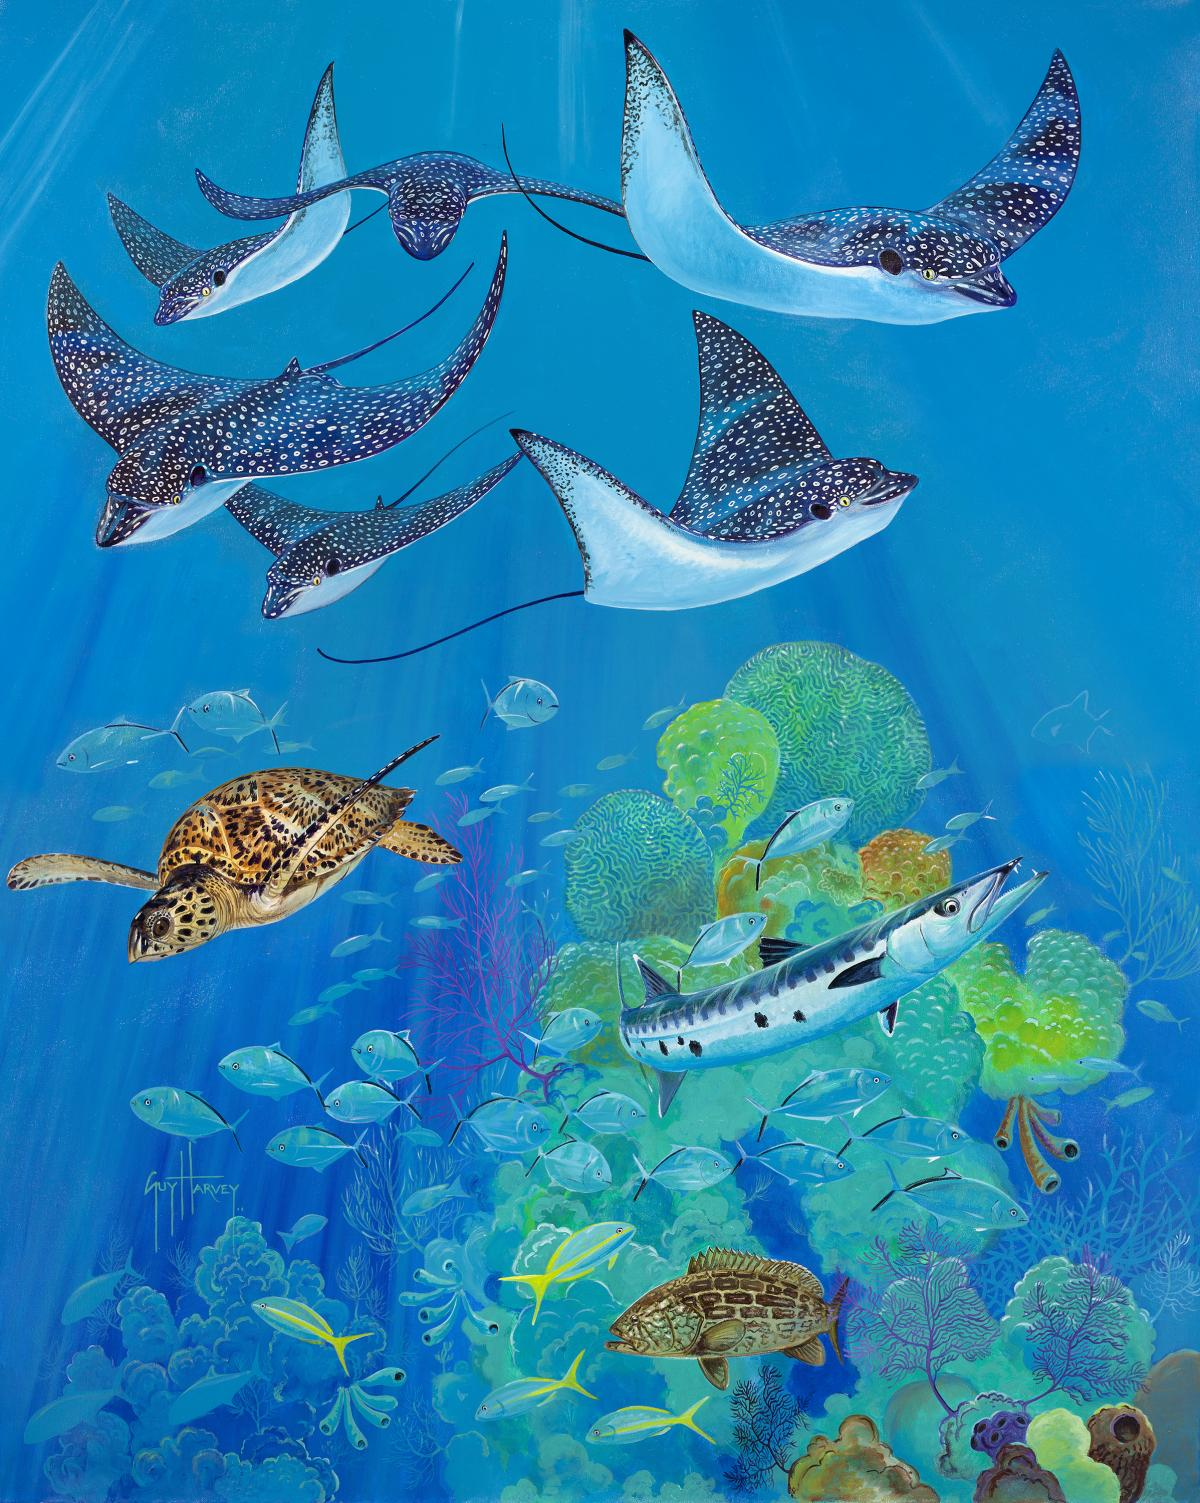 Eagle Ray Pass | Wallhanging by Guy Harvey | Artists for Conservation 2021